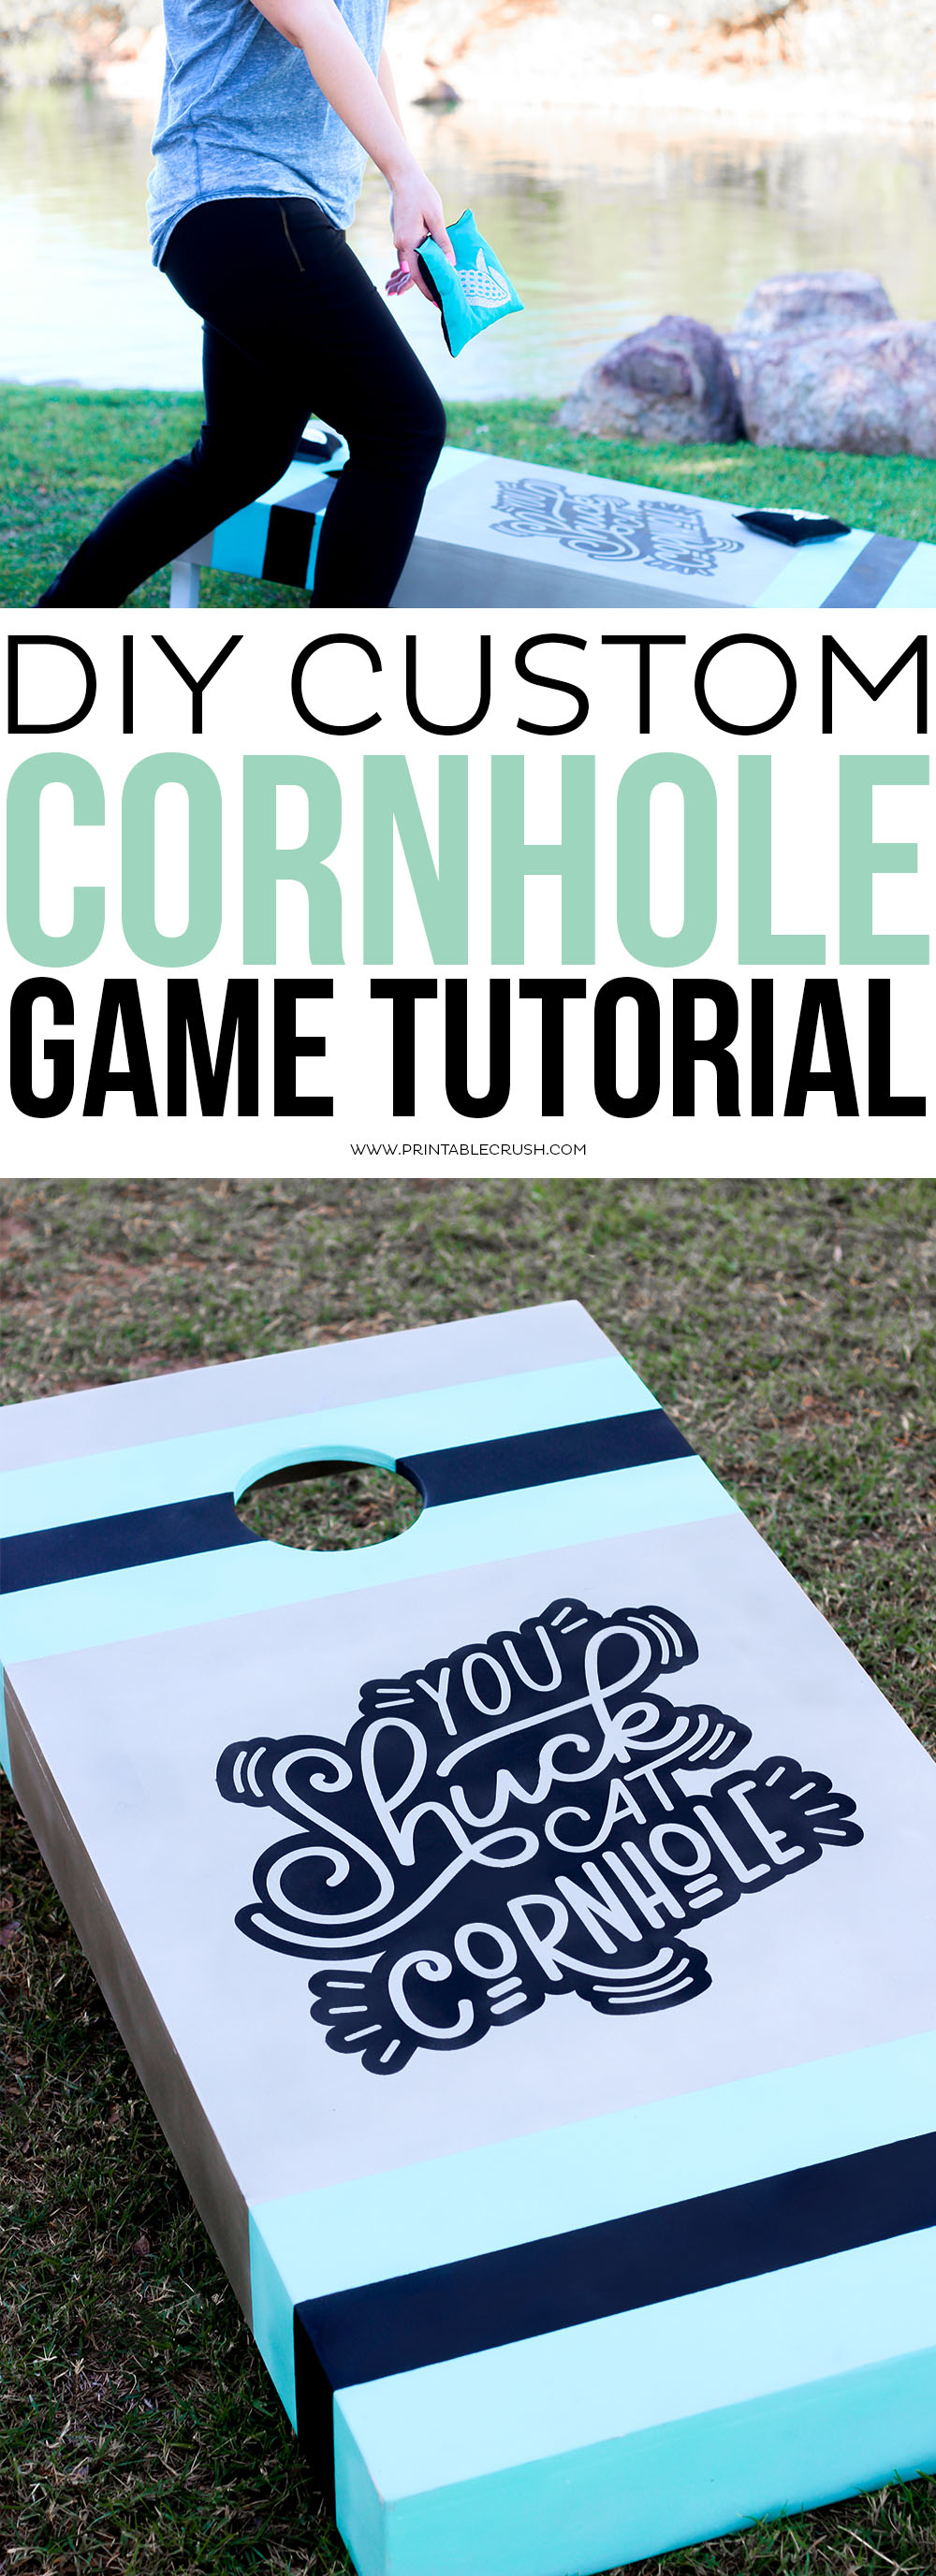 This Cornhole Game is always a favorite at family get-togethers and parties. Use this DIY Cornhole Game Tutorial to create your own custom design! via @printablecrush